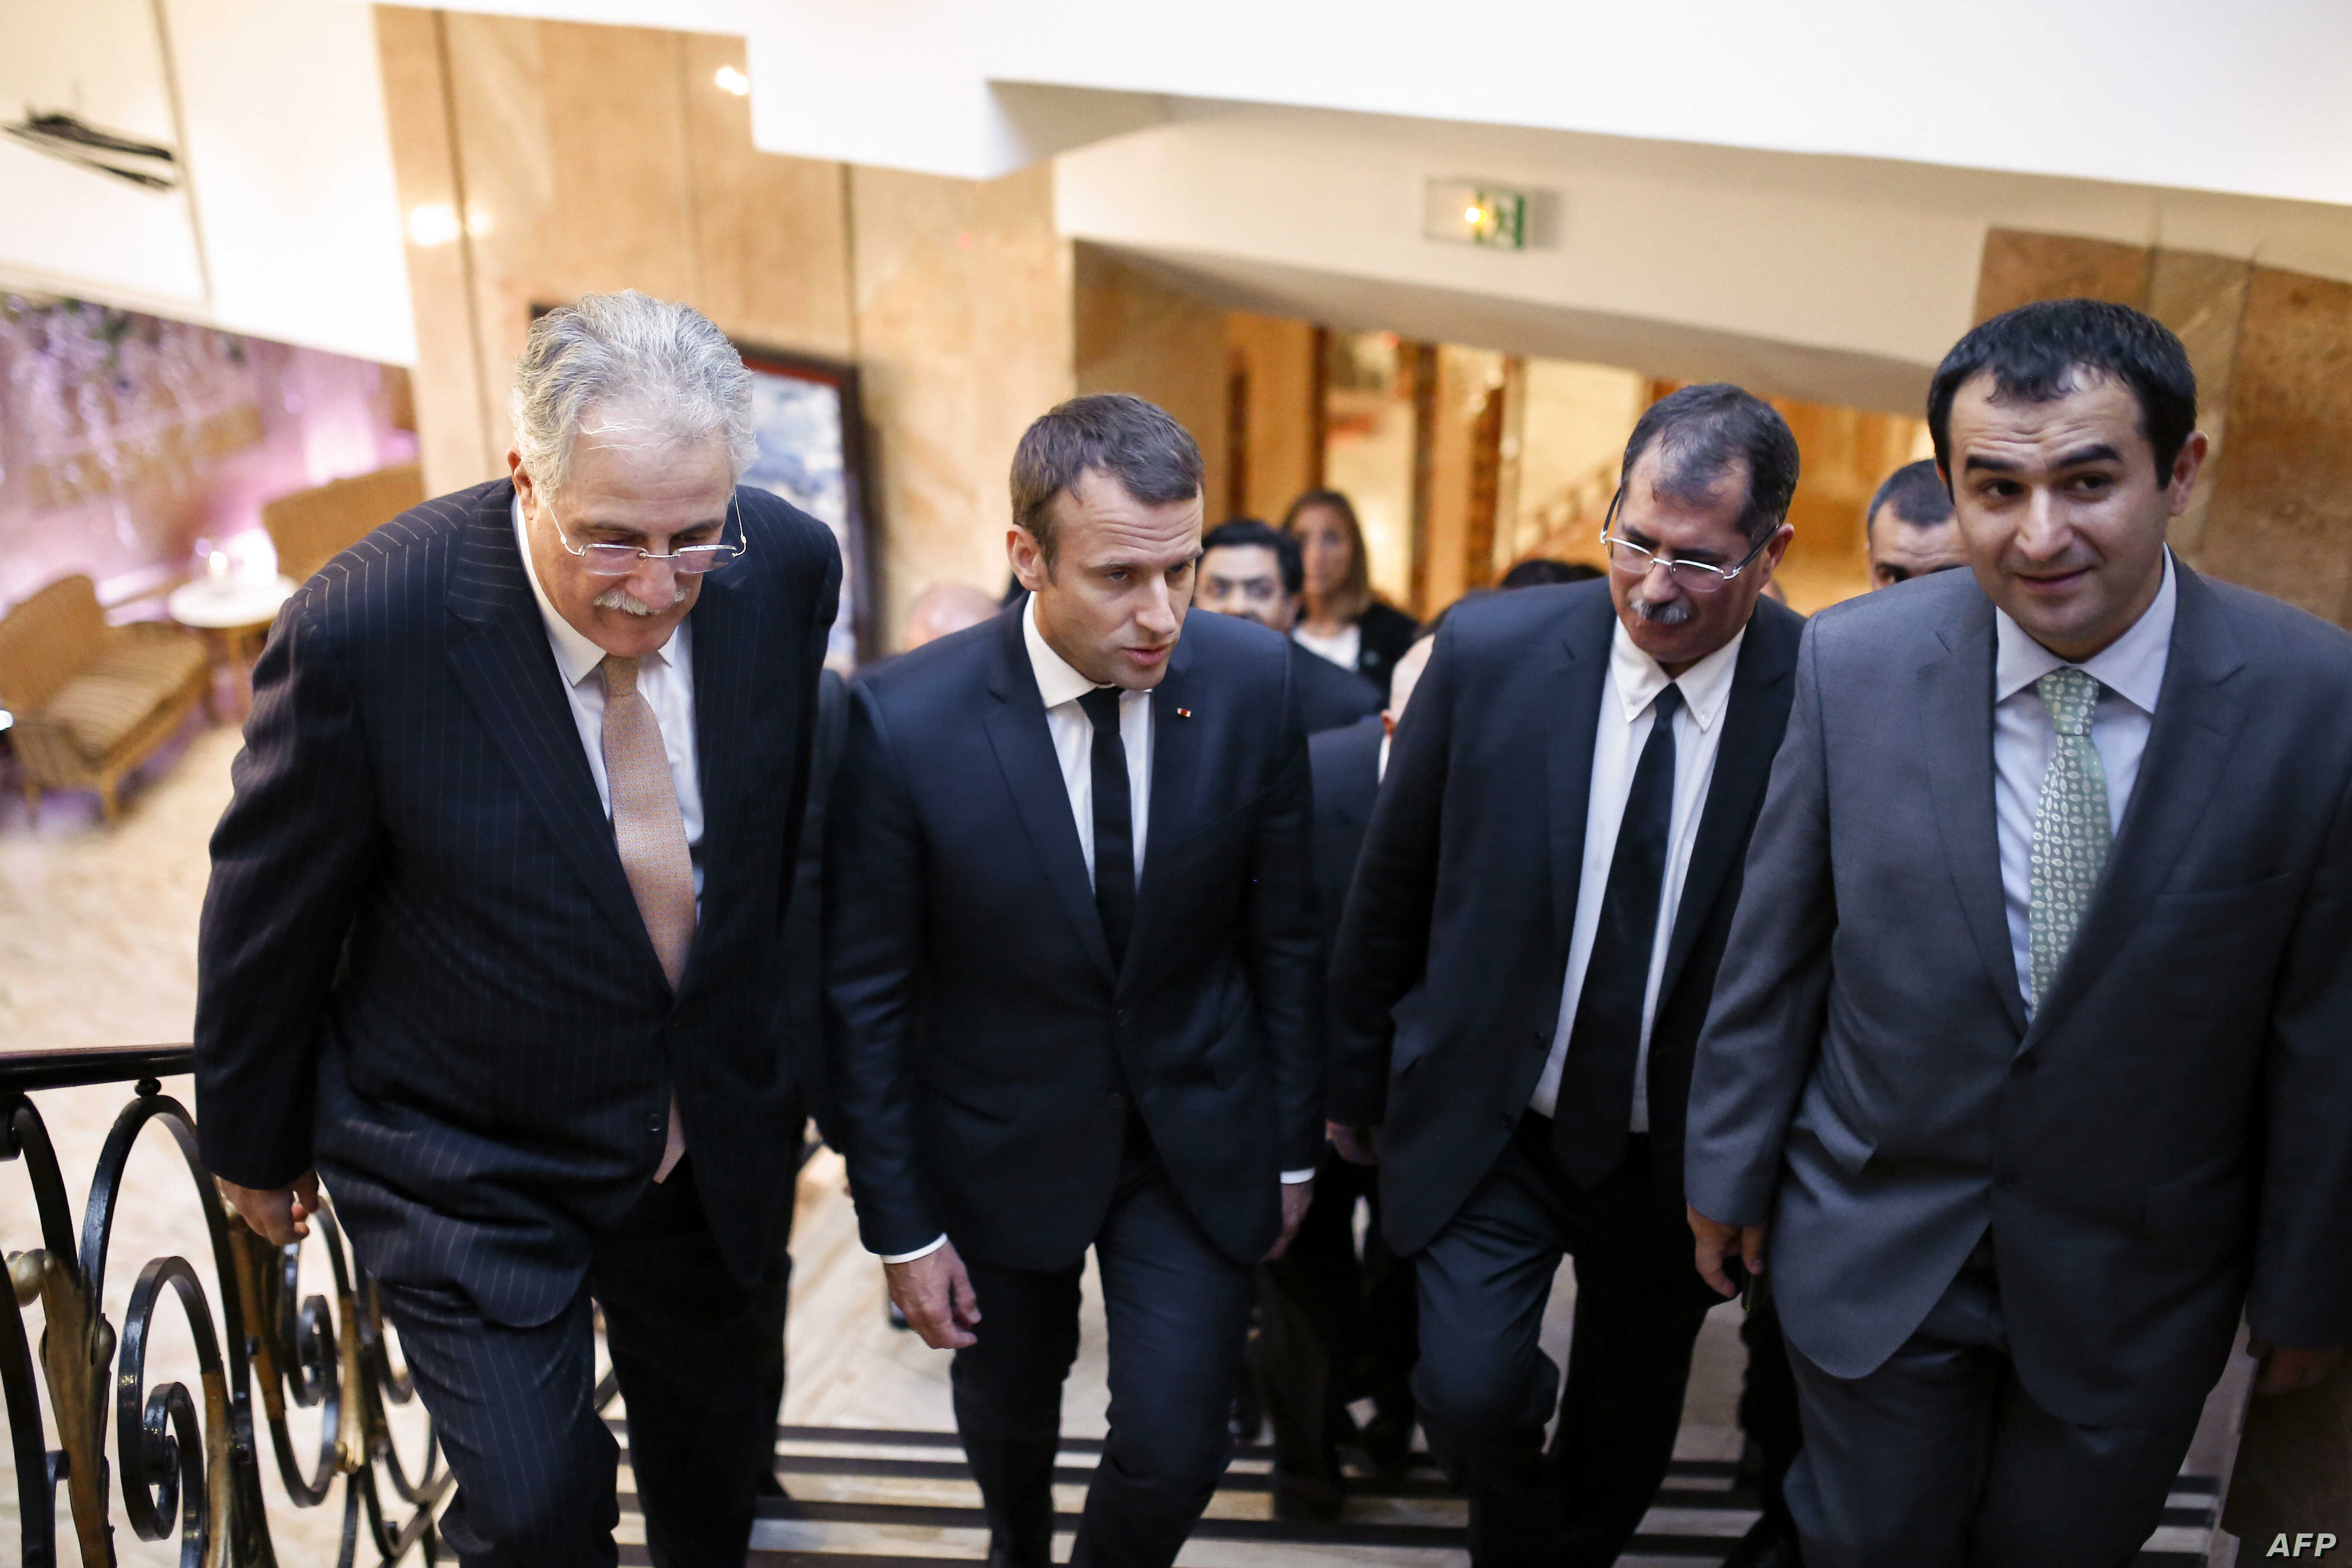 (LtoR) Vice President of the French Council of the Muslim Faith (CFCM) Chems-Eddine Hafiz, French President Macron, CFCM President Anouar Kbibech and CFM Vice President Ahmet Ogras, arrive to attend a dinner organized by CFCM, June 20, 2017.